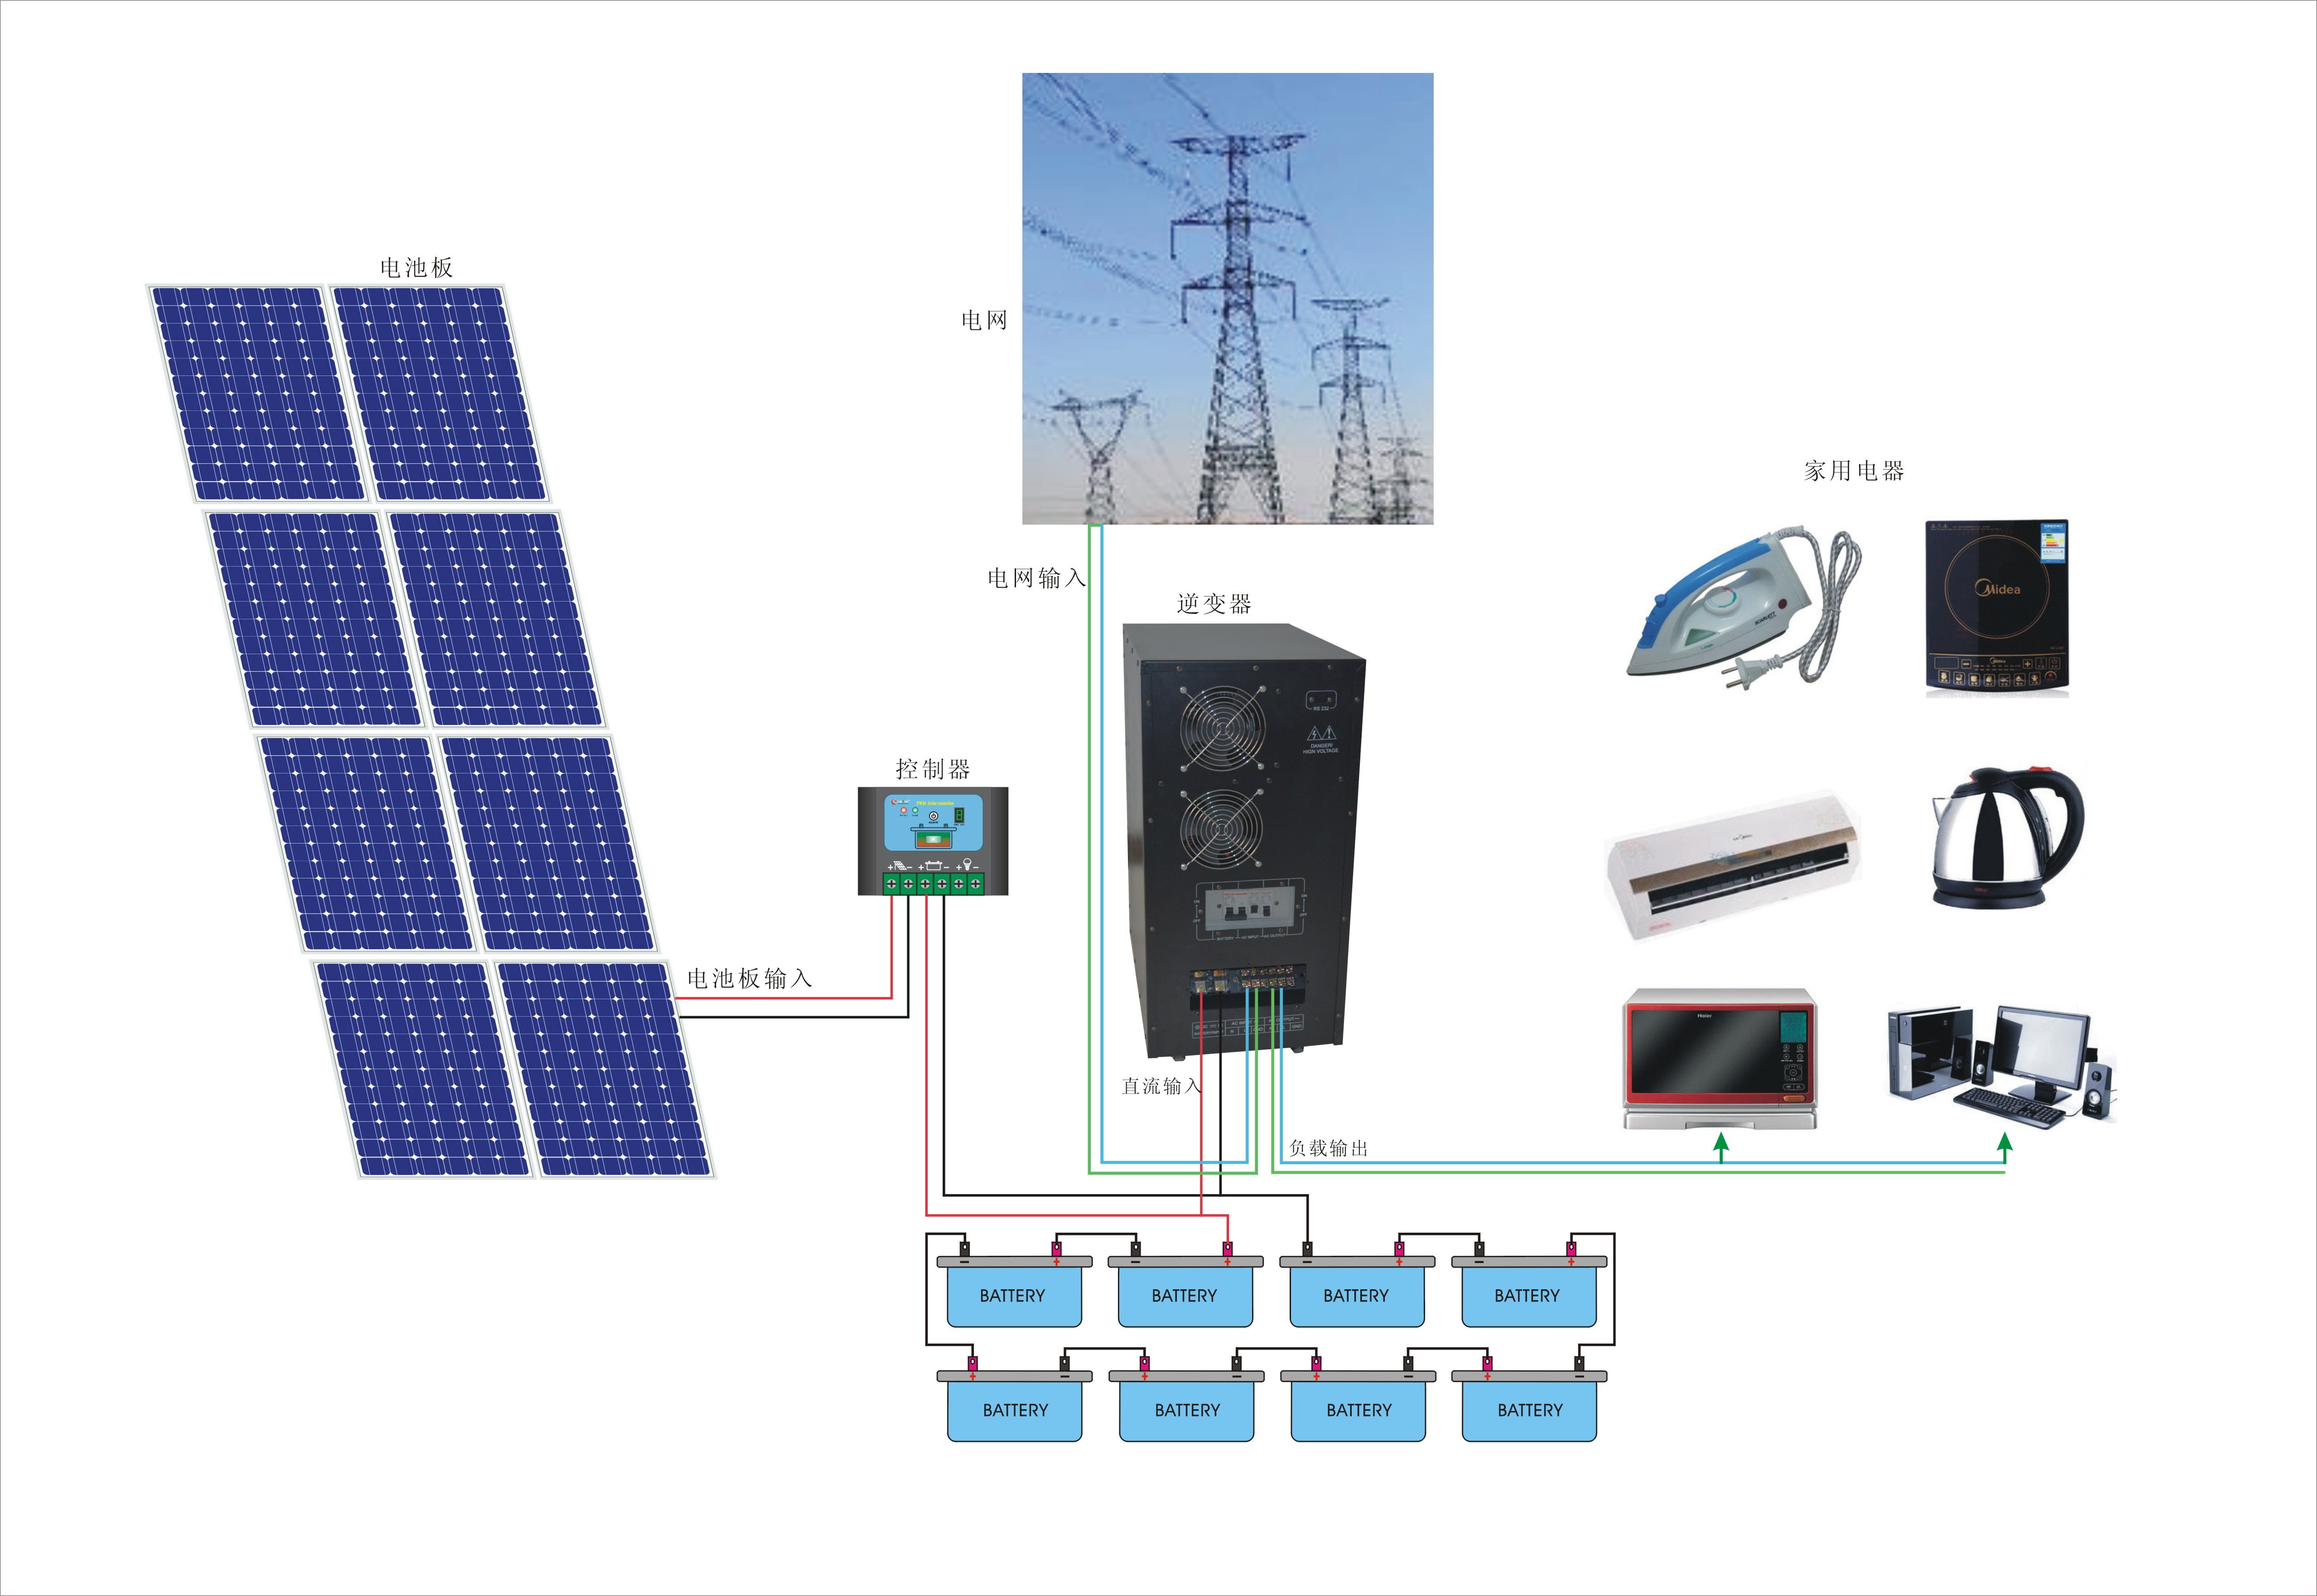 Buy Complete 24v 1000w Solar Panel Systems Pricesizeweightmodel Controller 145v Open Circuit Voltage Mppt Charge